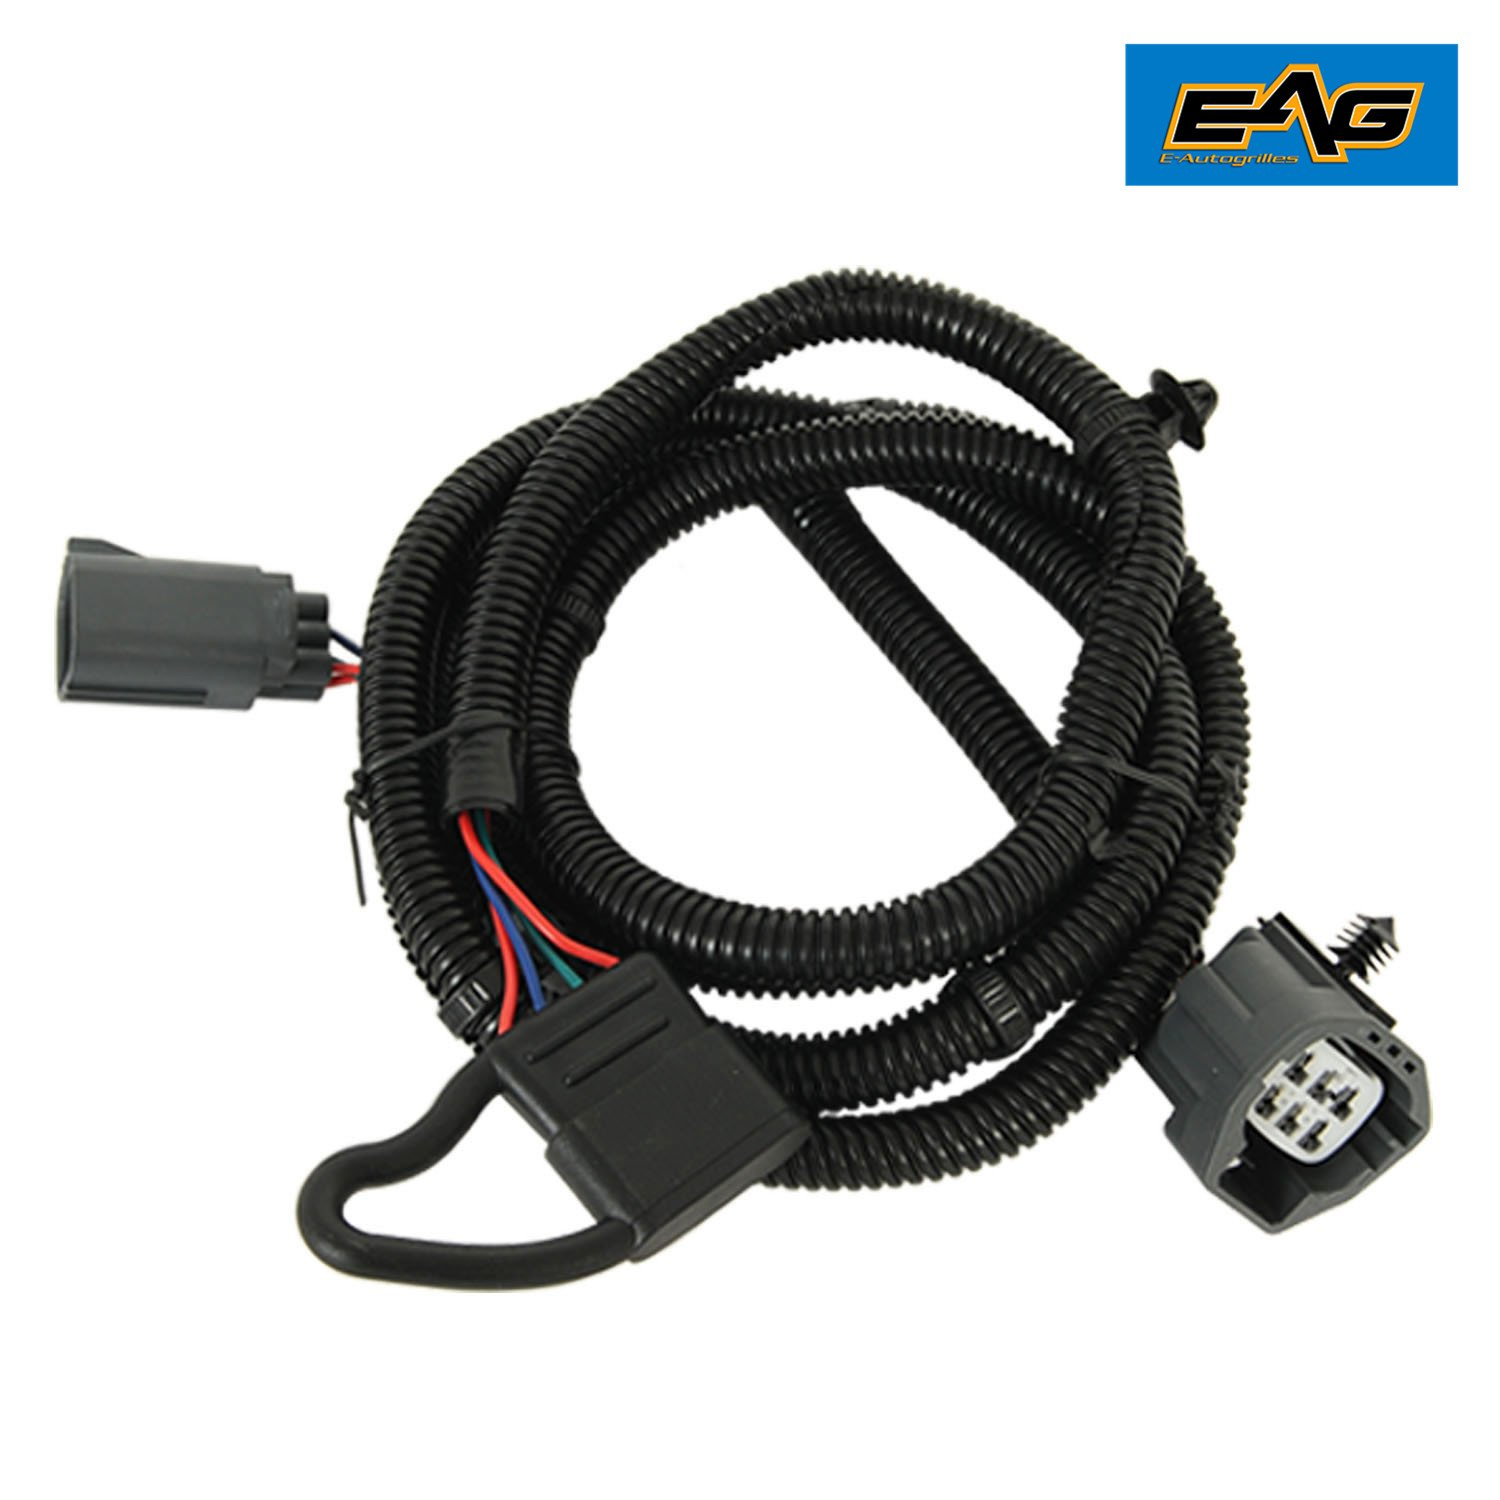 EAG 67' Tow Trailer Hitch Wiring Harness Kit w/ 4-way Flat Connector Dust Cover Set for 07-18 Jeep Wrangler JK 2/4 Door E-Autogrilles